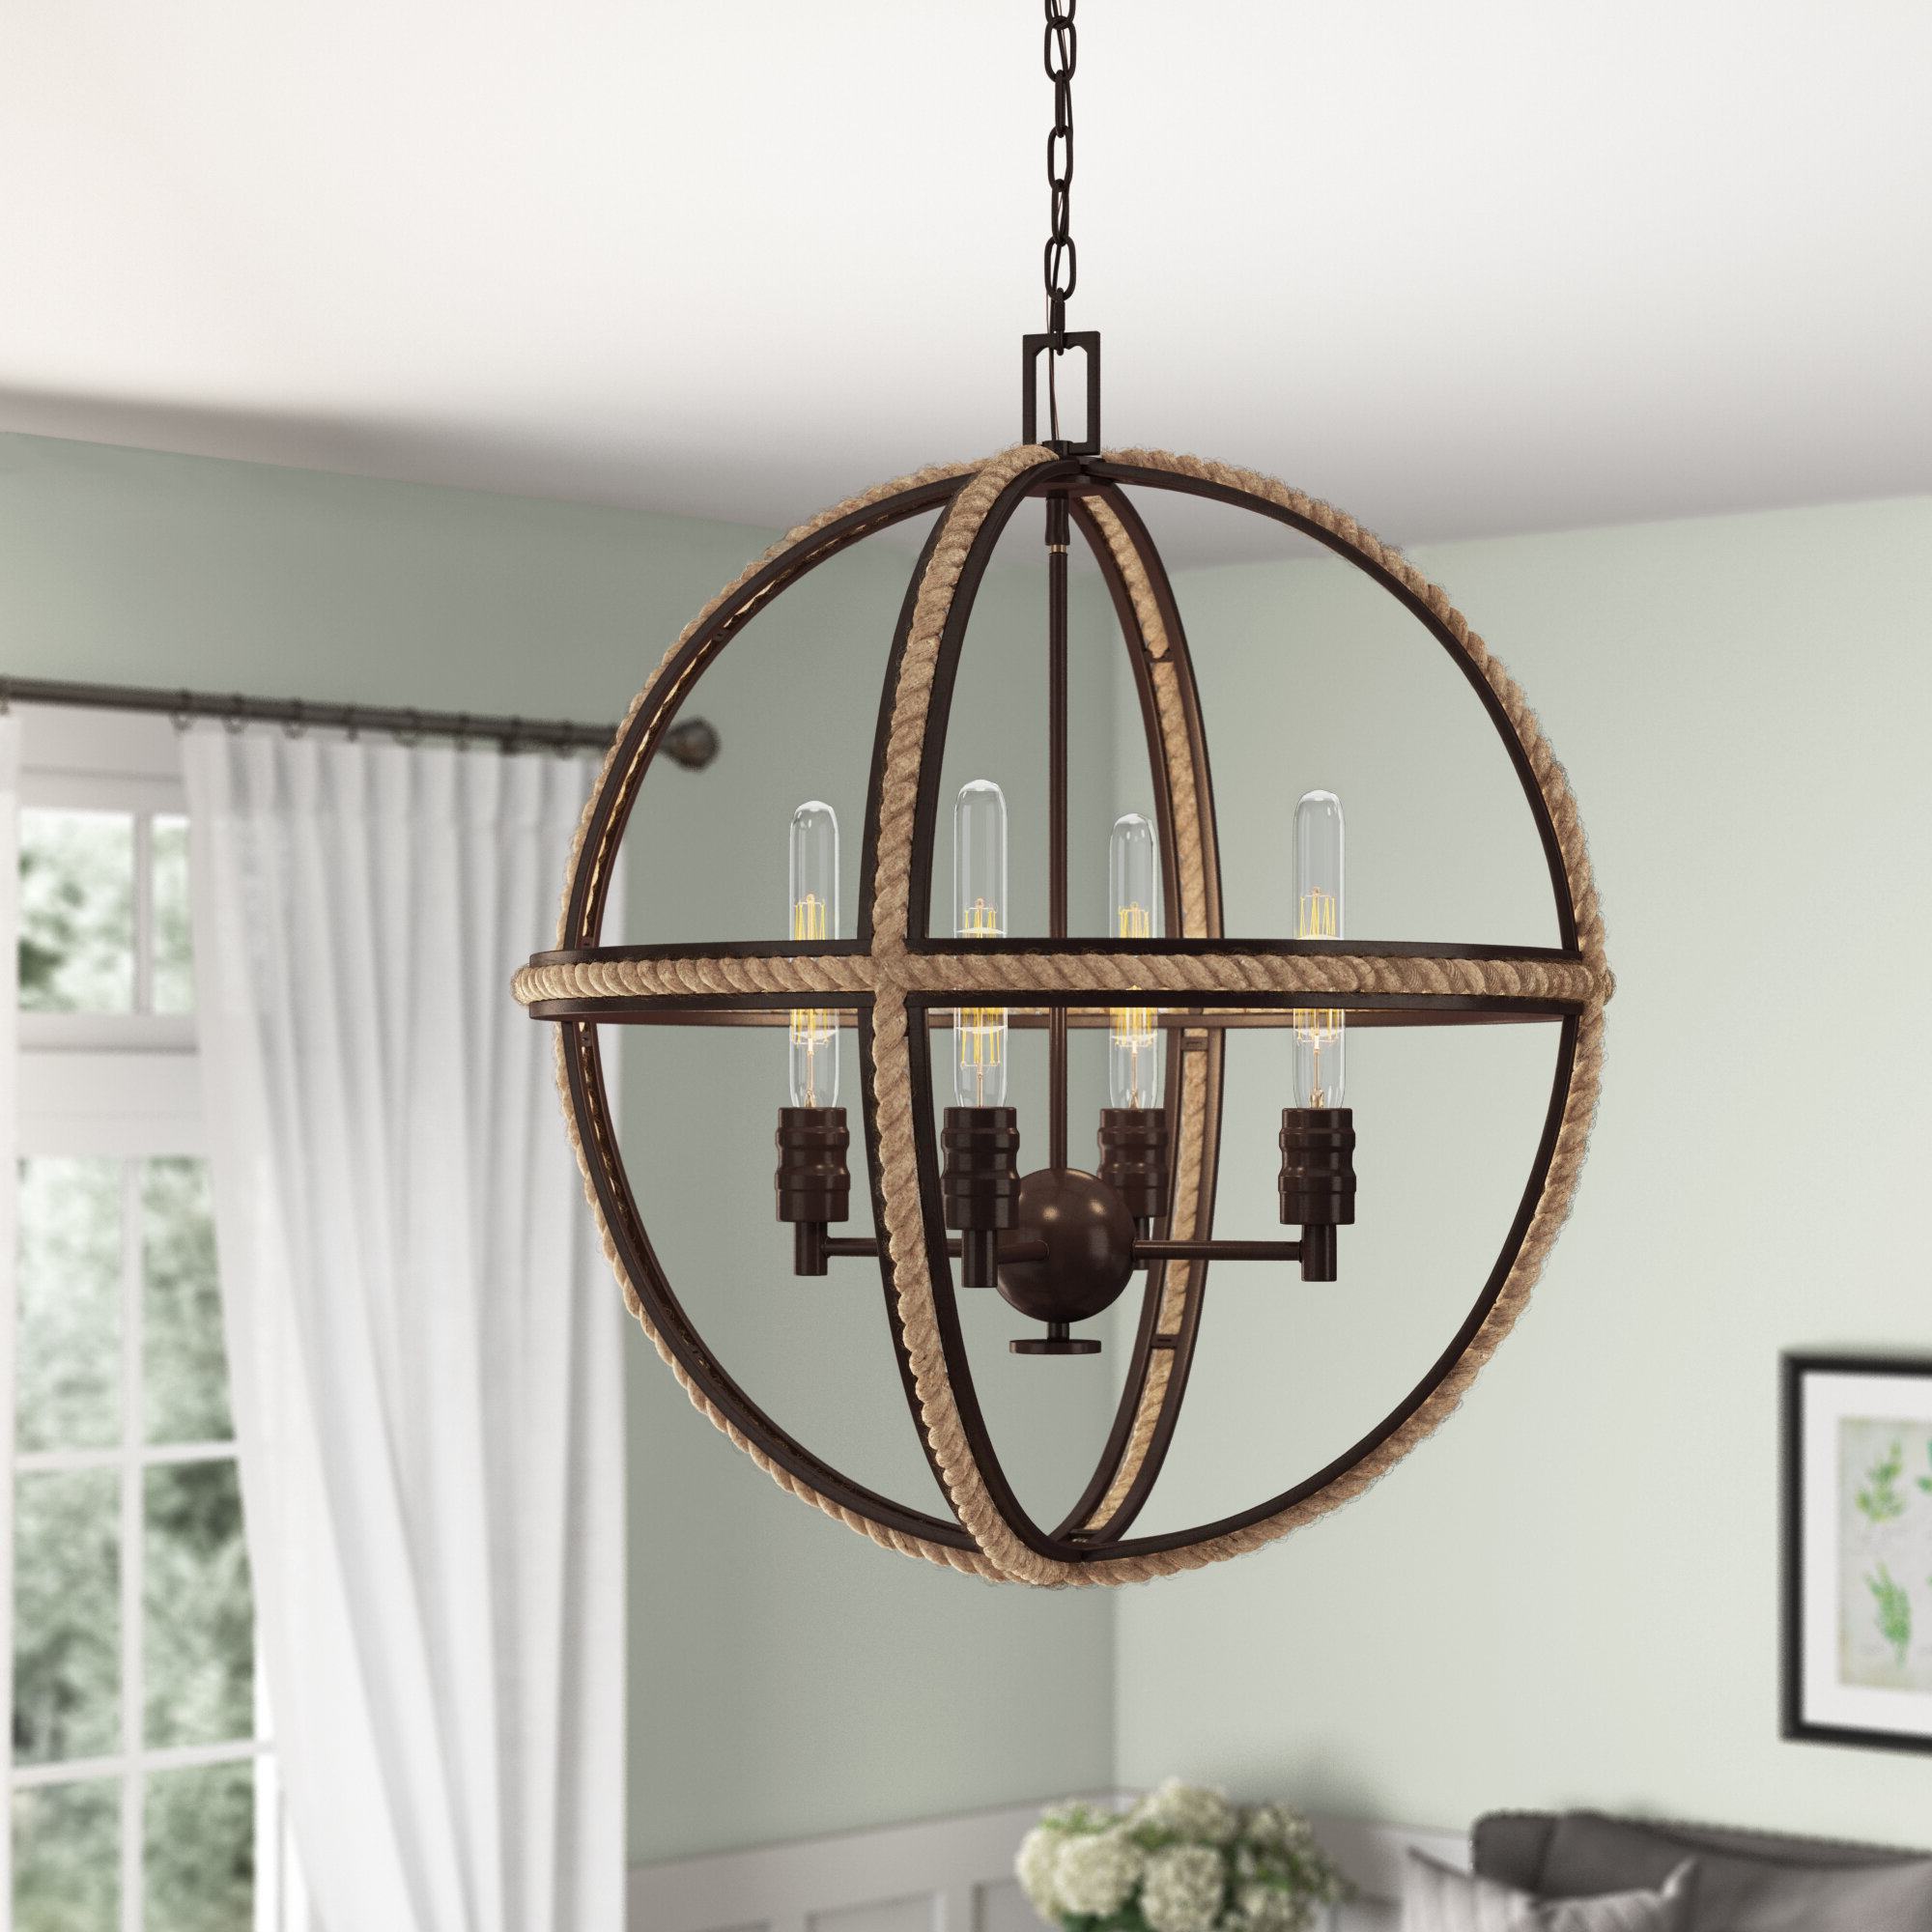 Kennett 4-Light Globe Chandelier intended for Newest Ricciardo 4-Light Globe Chandeliers